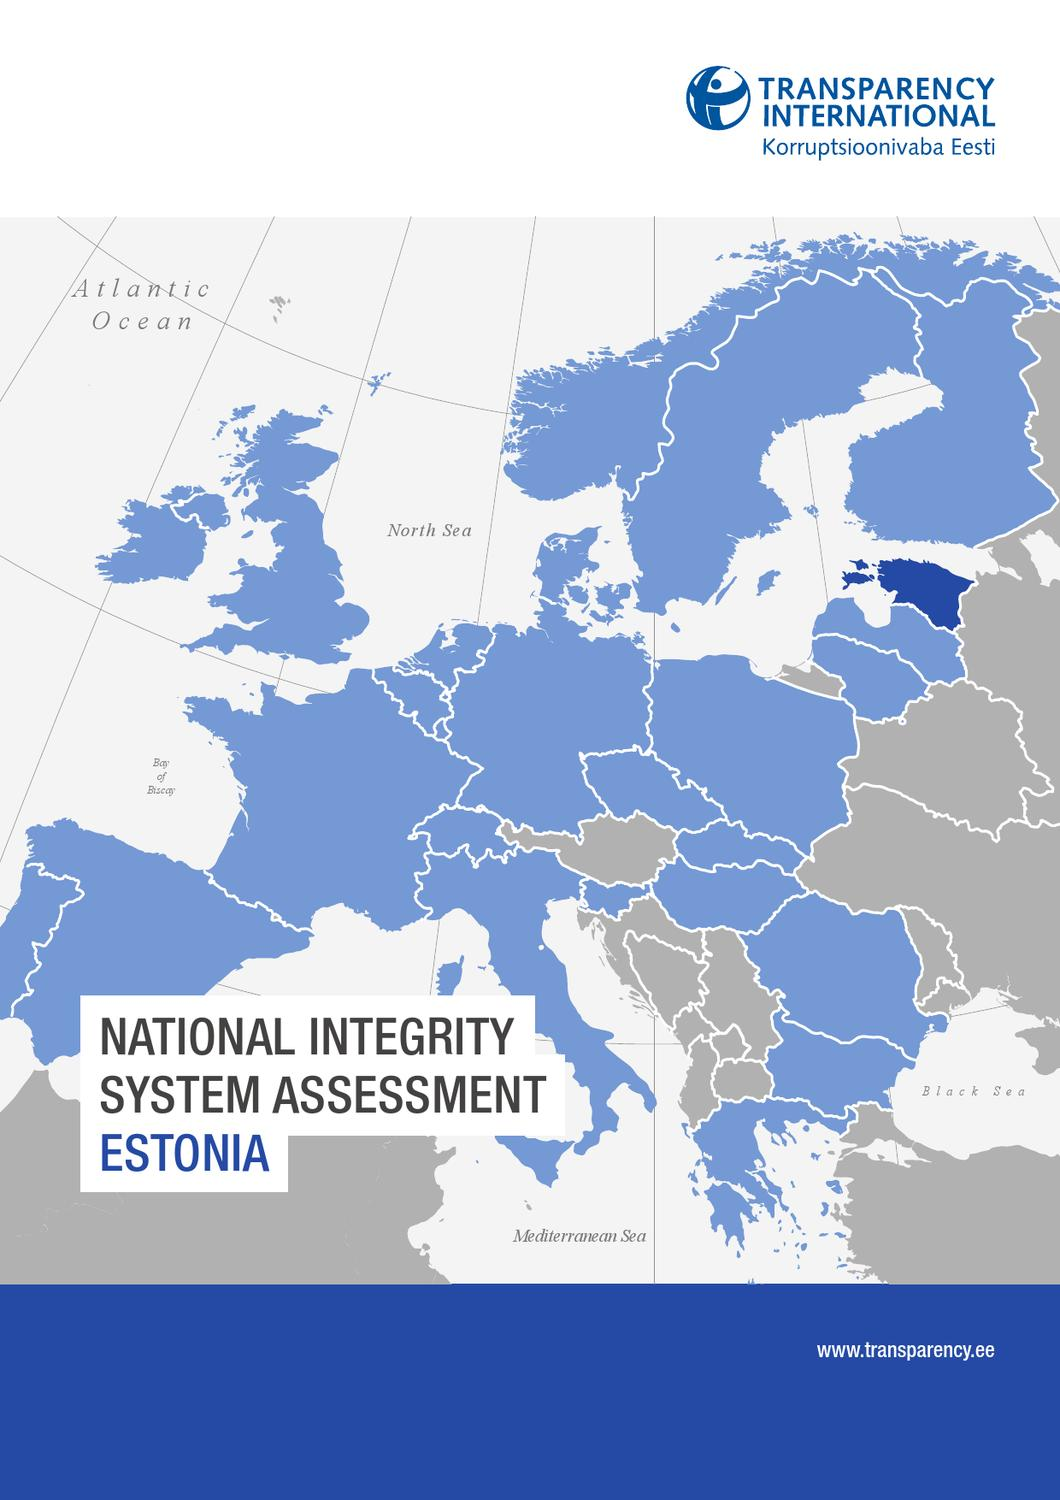 Executive Power Abuse Part 2 >> National Integrity System Assessment Estonia English (Executive Summary) by Transparency ...